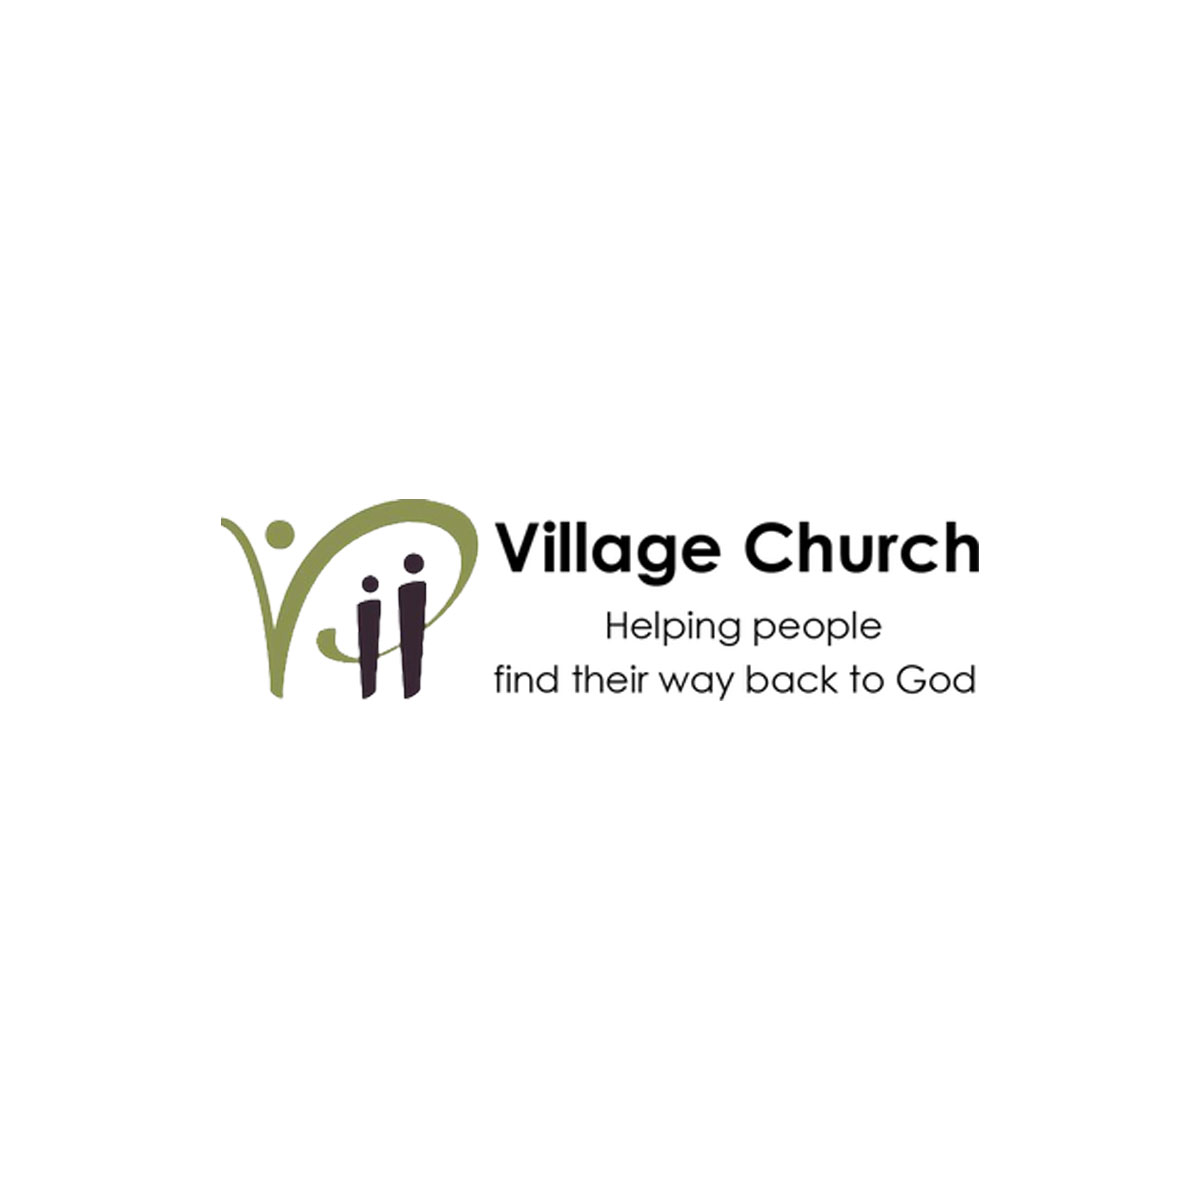 Village Church logo